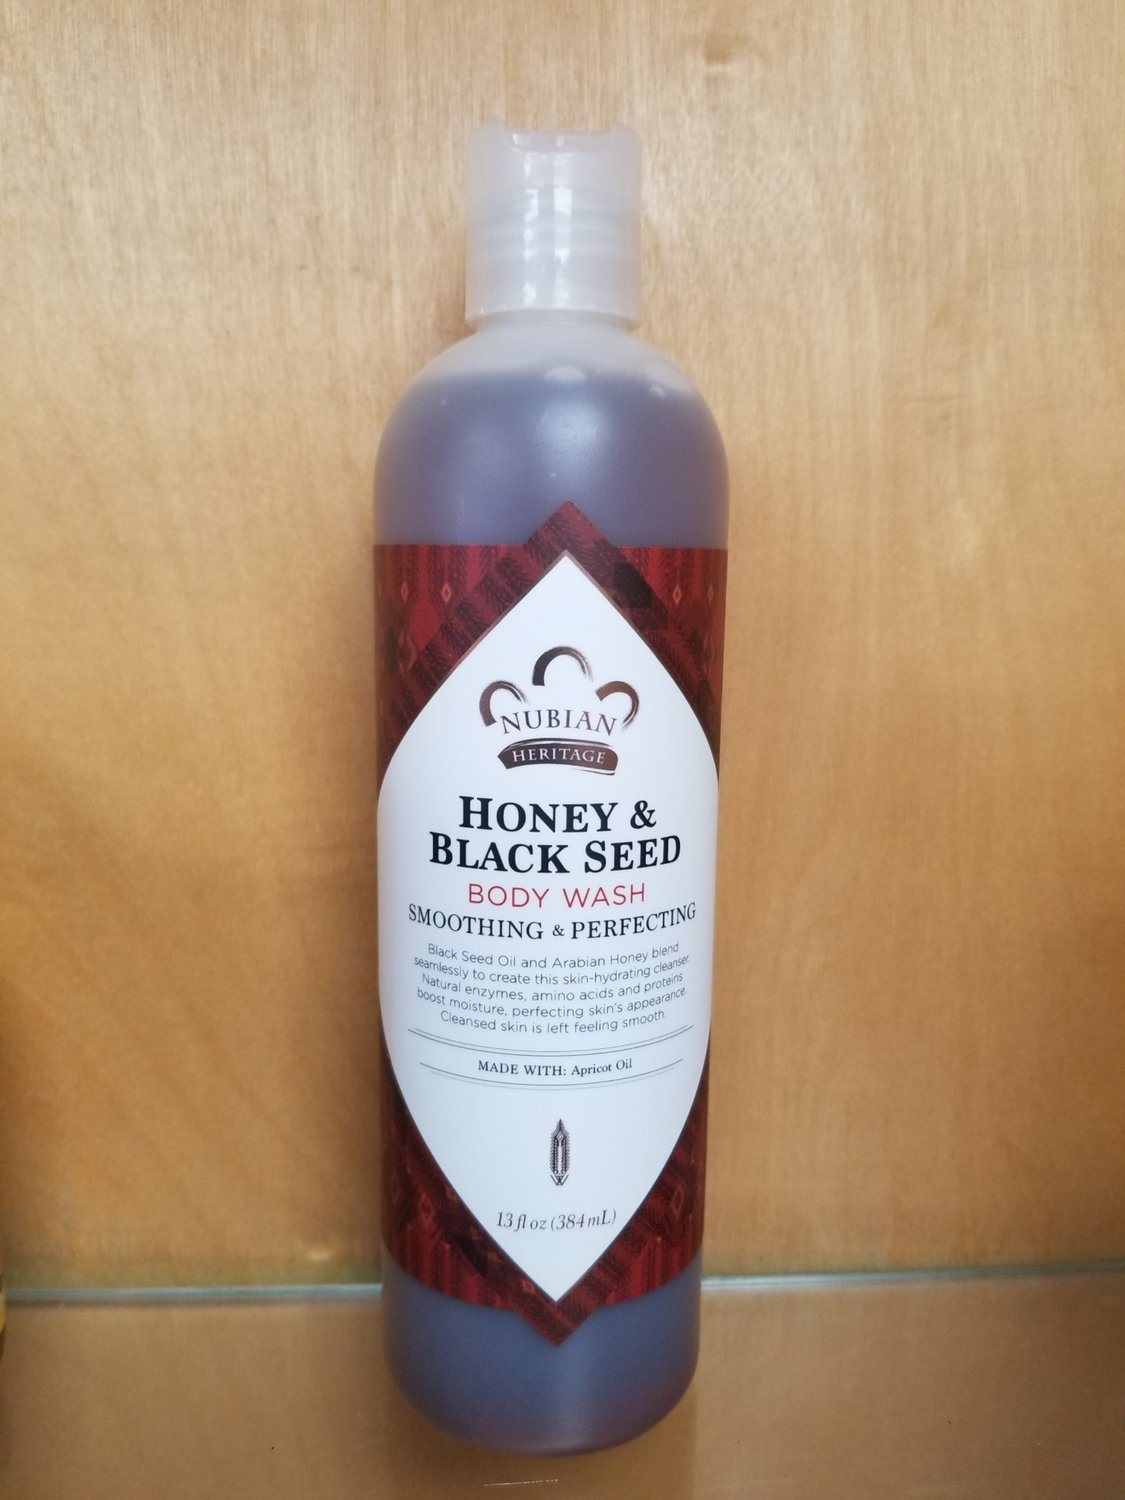 Nubian Heritage Honey & Black Seed Body Wash 13oz